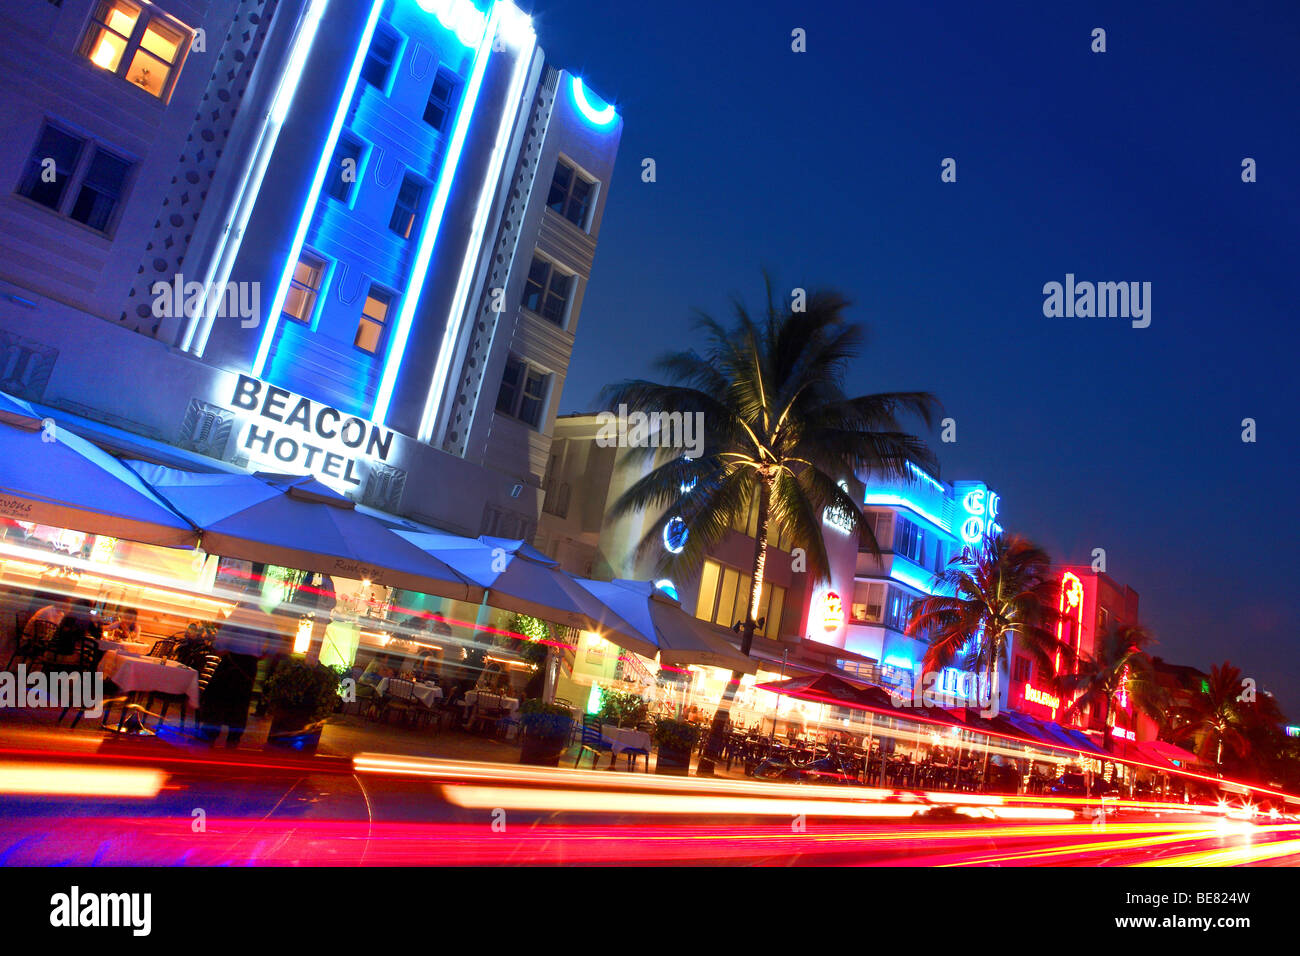 Neon Sign At Hotels On Ocean Drive At Night South Beach Miami Beach Florida Usa